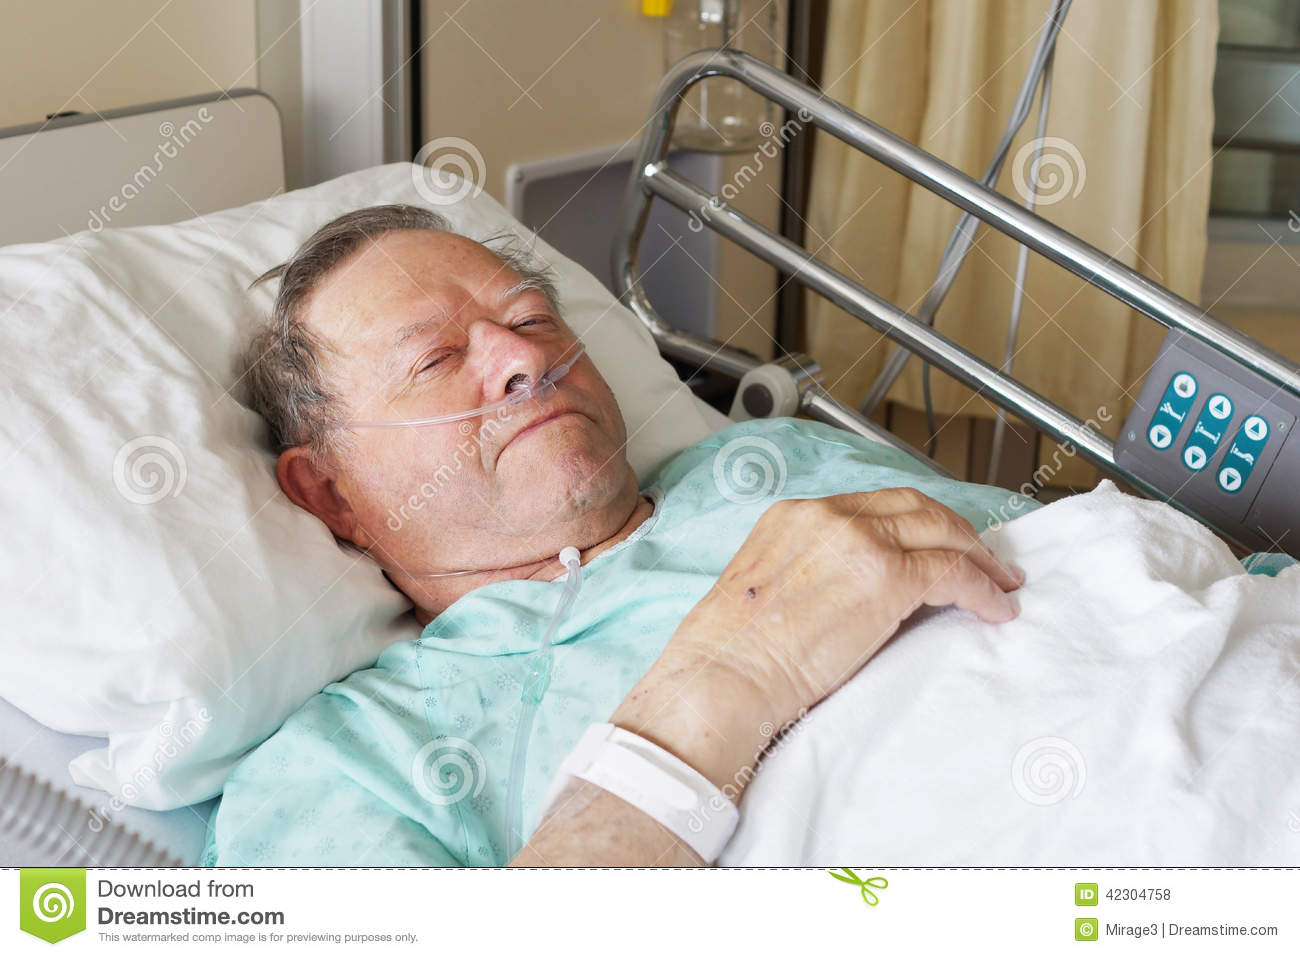 Images Of Sick Old Me In Hospital Bed : Portrait of sick old man in hospital bed.